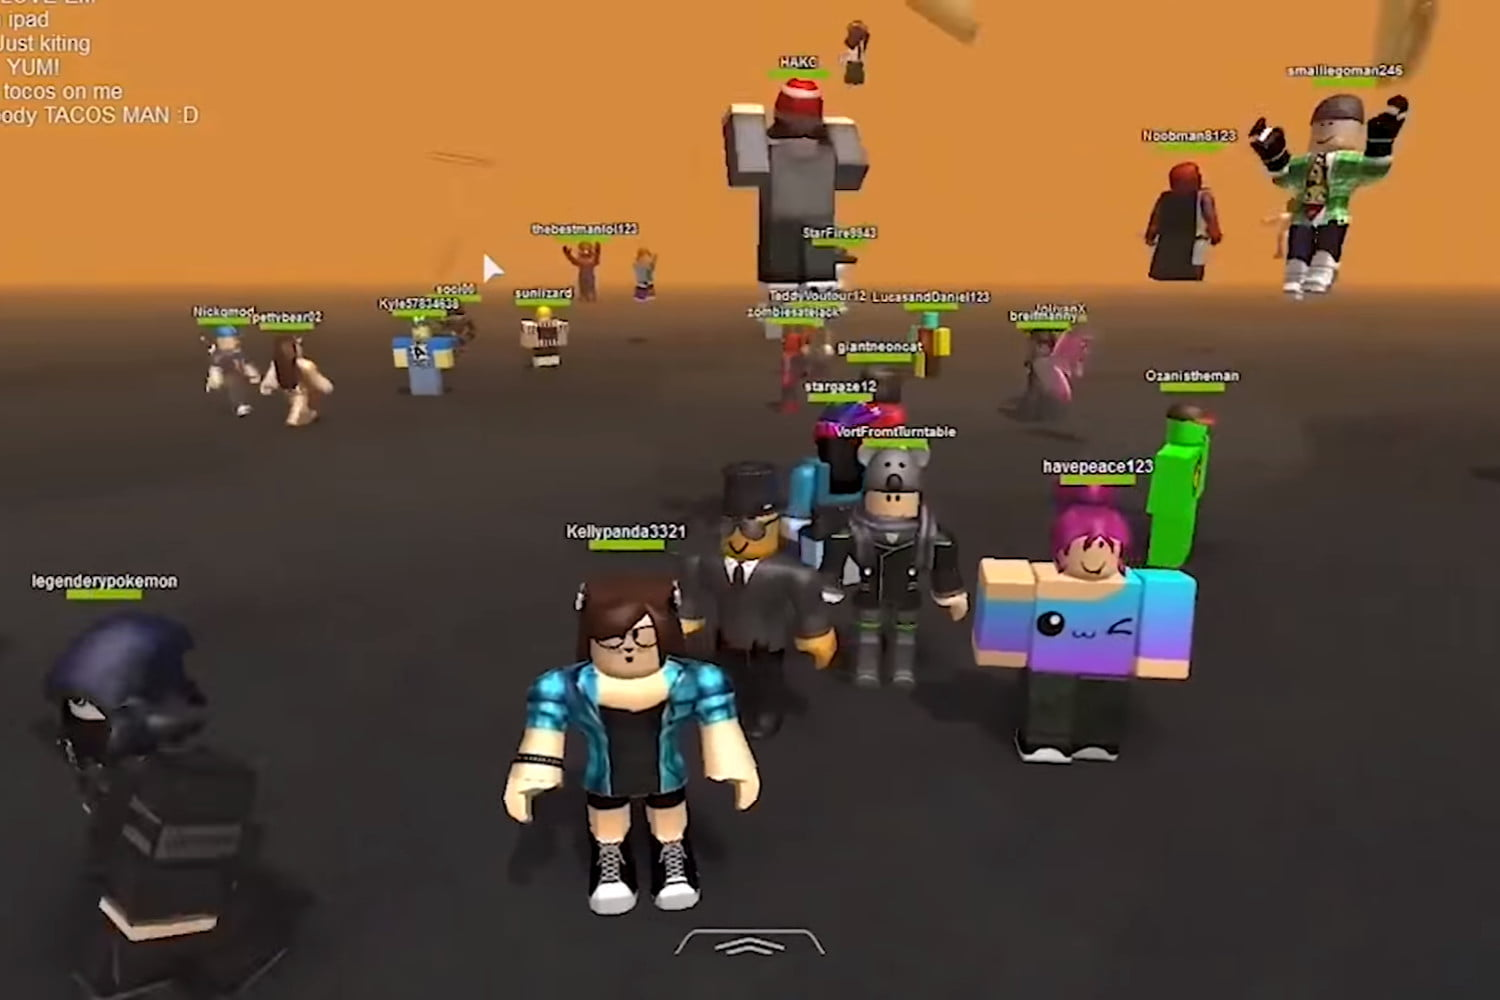 Hackers Use Discord To Steal Roblox login info, Robux in